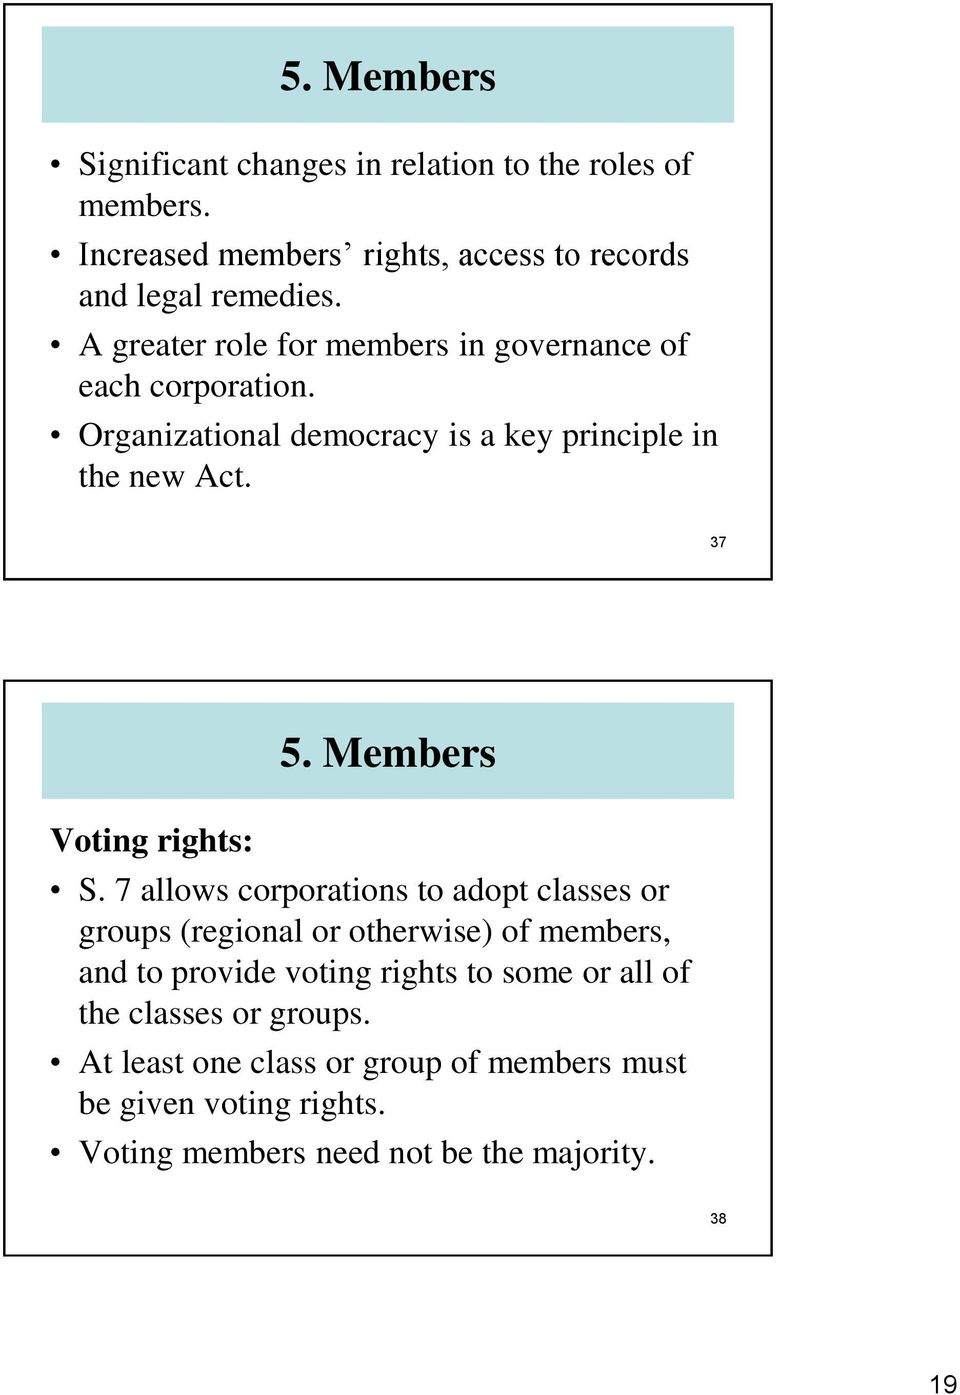 37 Voting rights: 5. Members S.